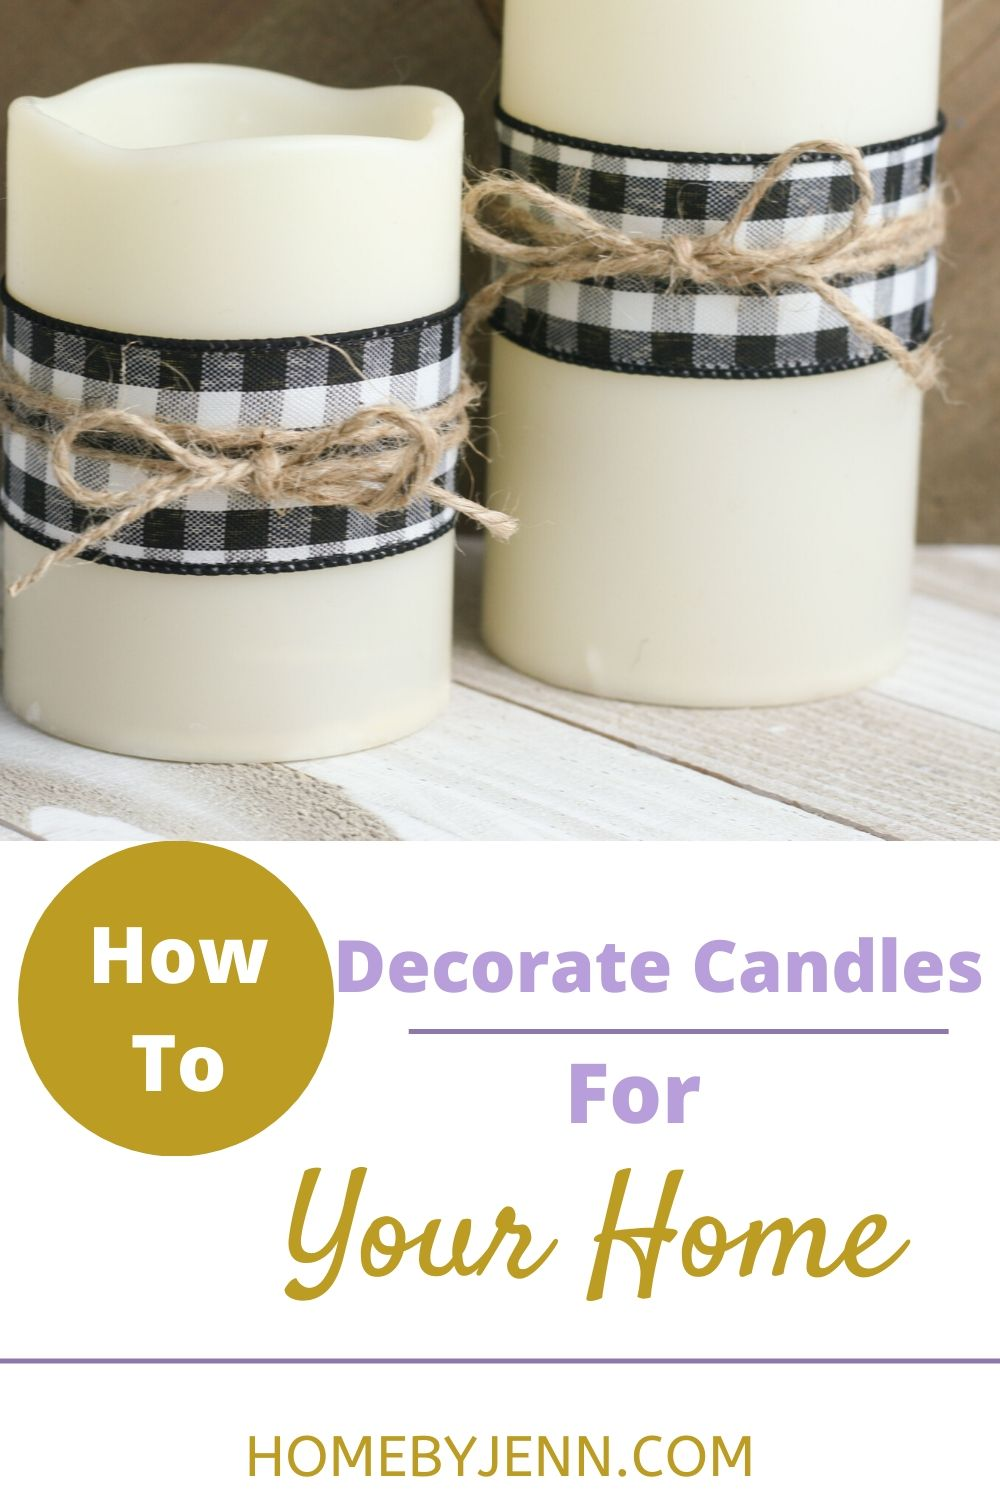 Spruce up those dull and boring plain candles by decorating them! This is a simple and budget-friendly home decor project that takes minutes to make and will really update any room. via @homebyjenn